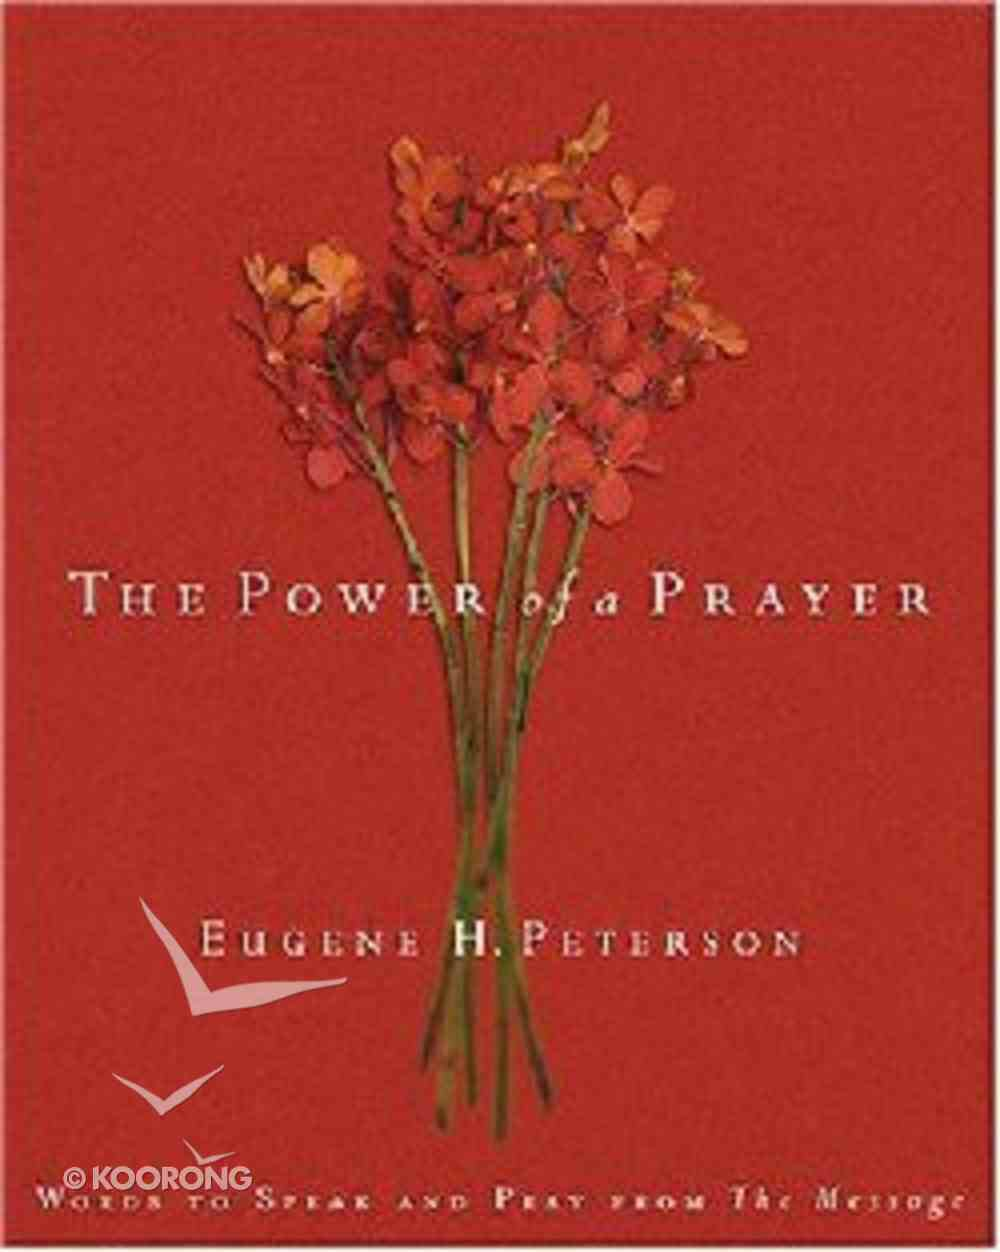 The Power of a Prayer Paperback